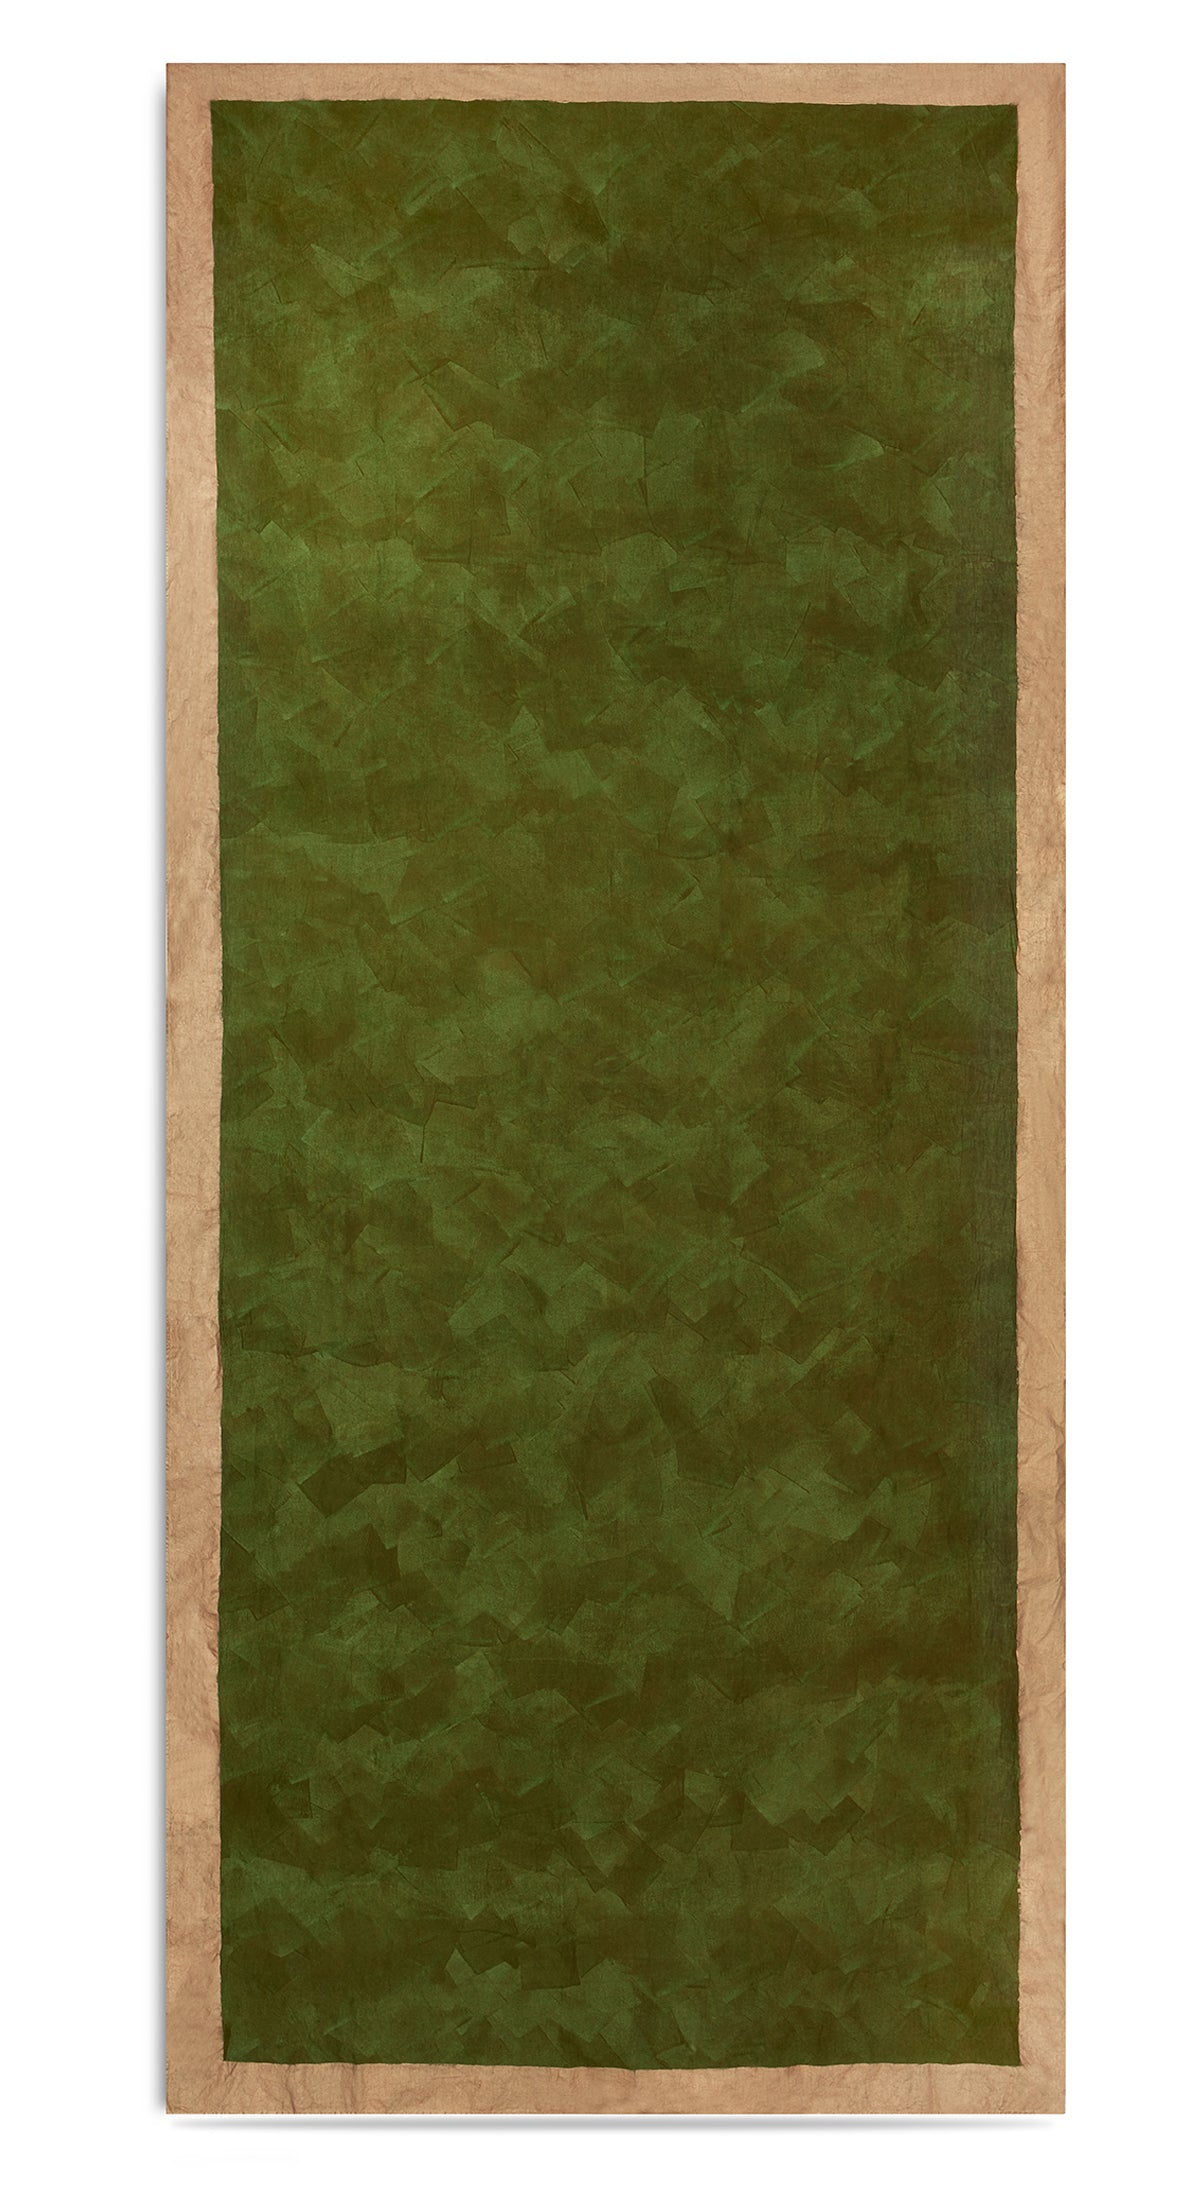 Bronze Edge Linen Tablecloth in Avocado Green